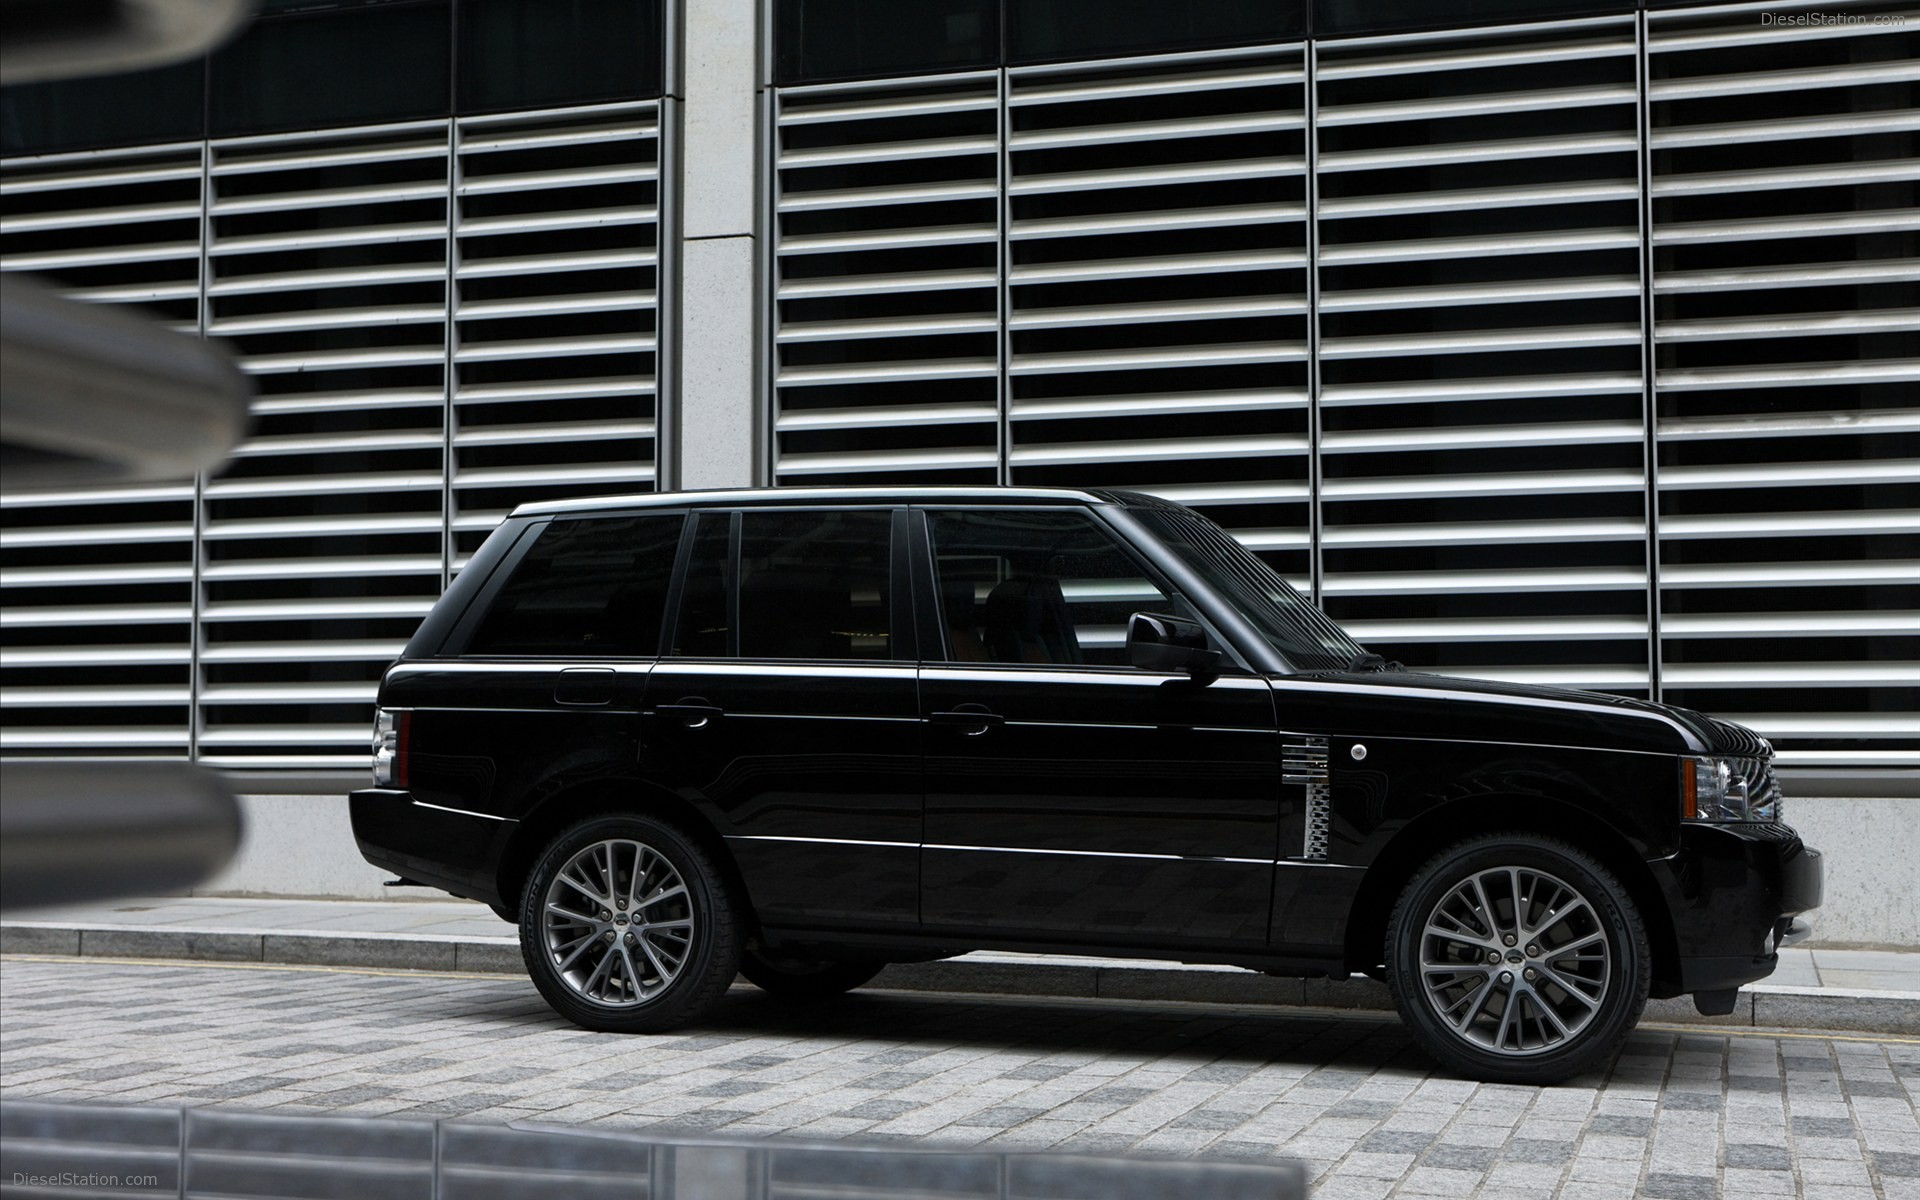 Land Rover Range Rover Black Edition 2011 Widescreen Exotic Car ...